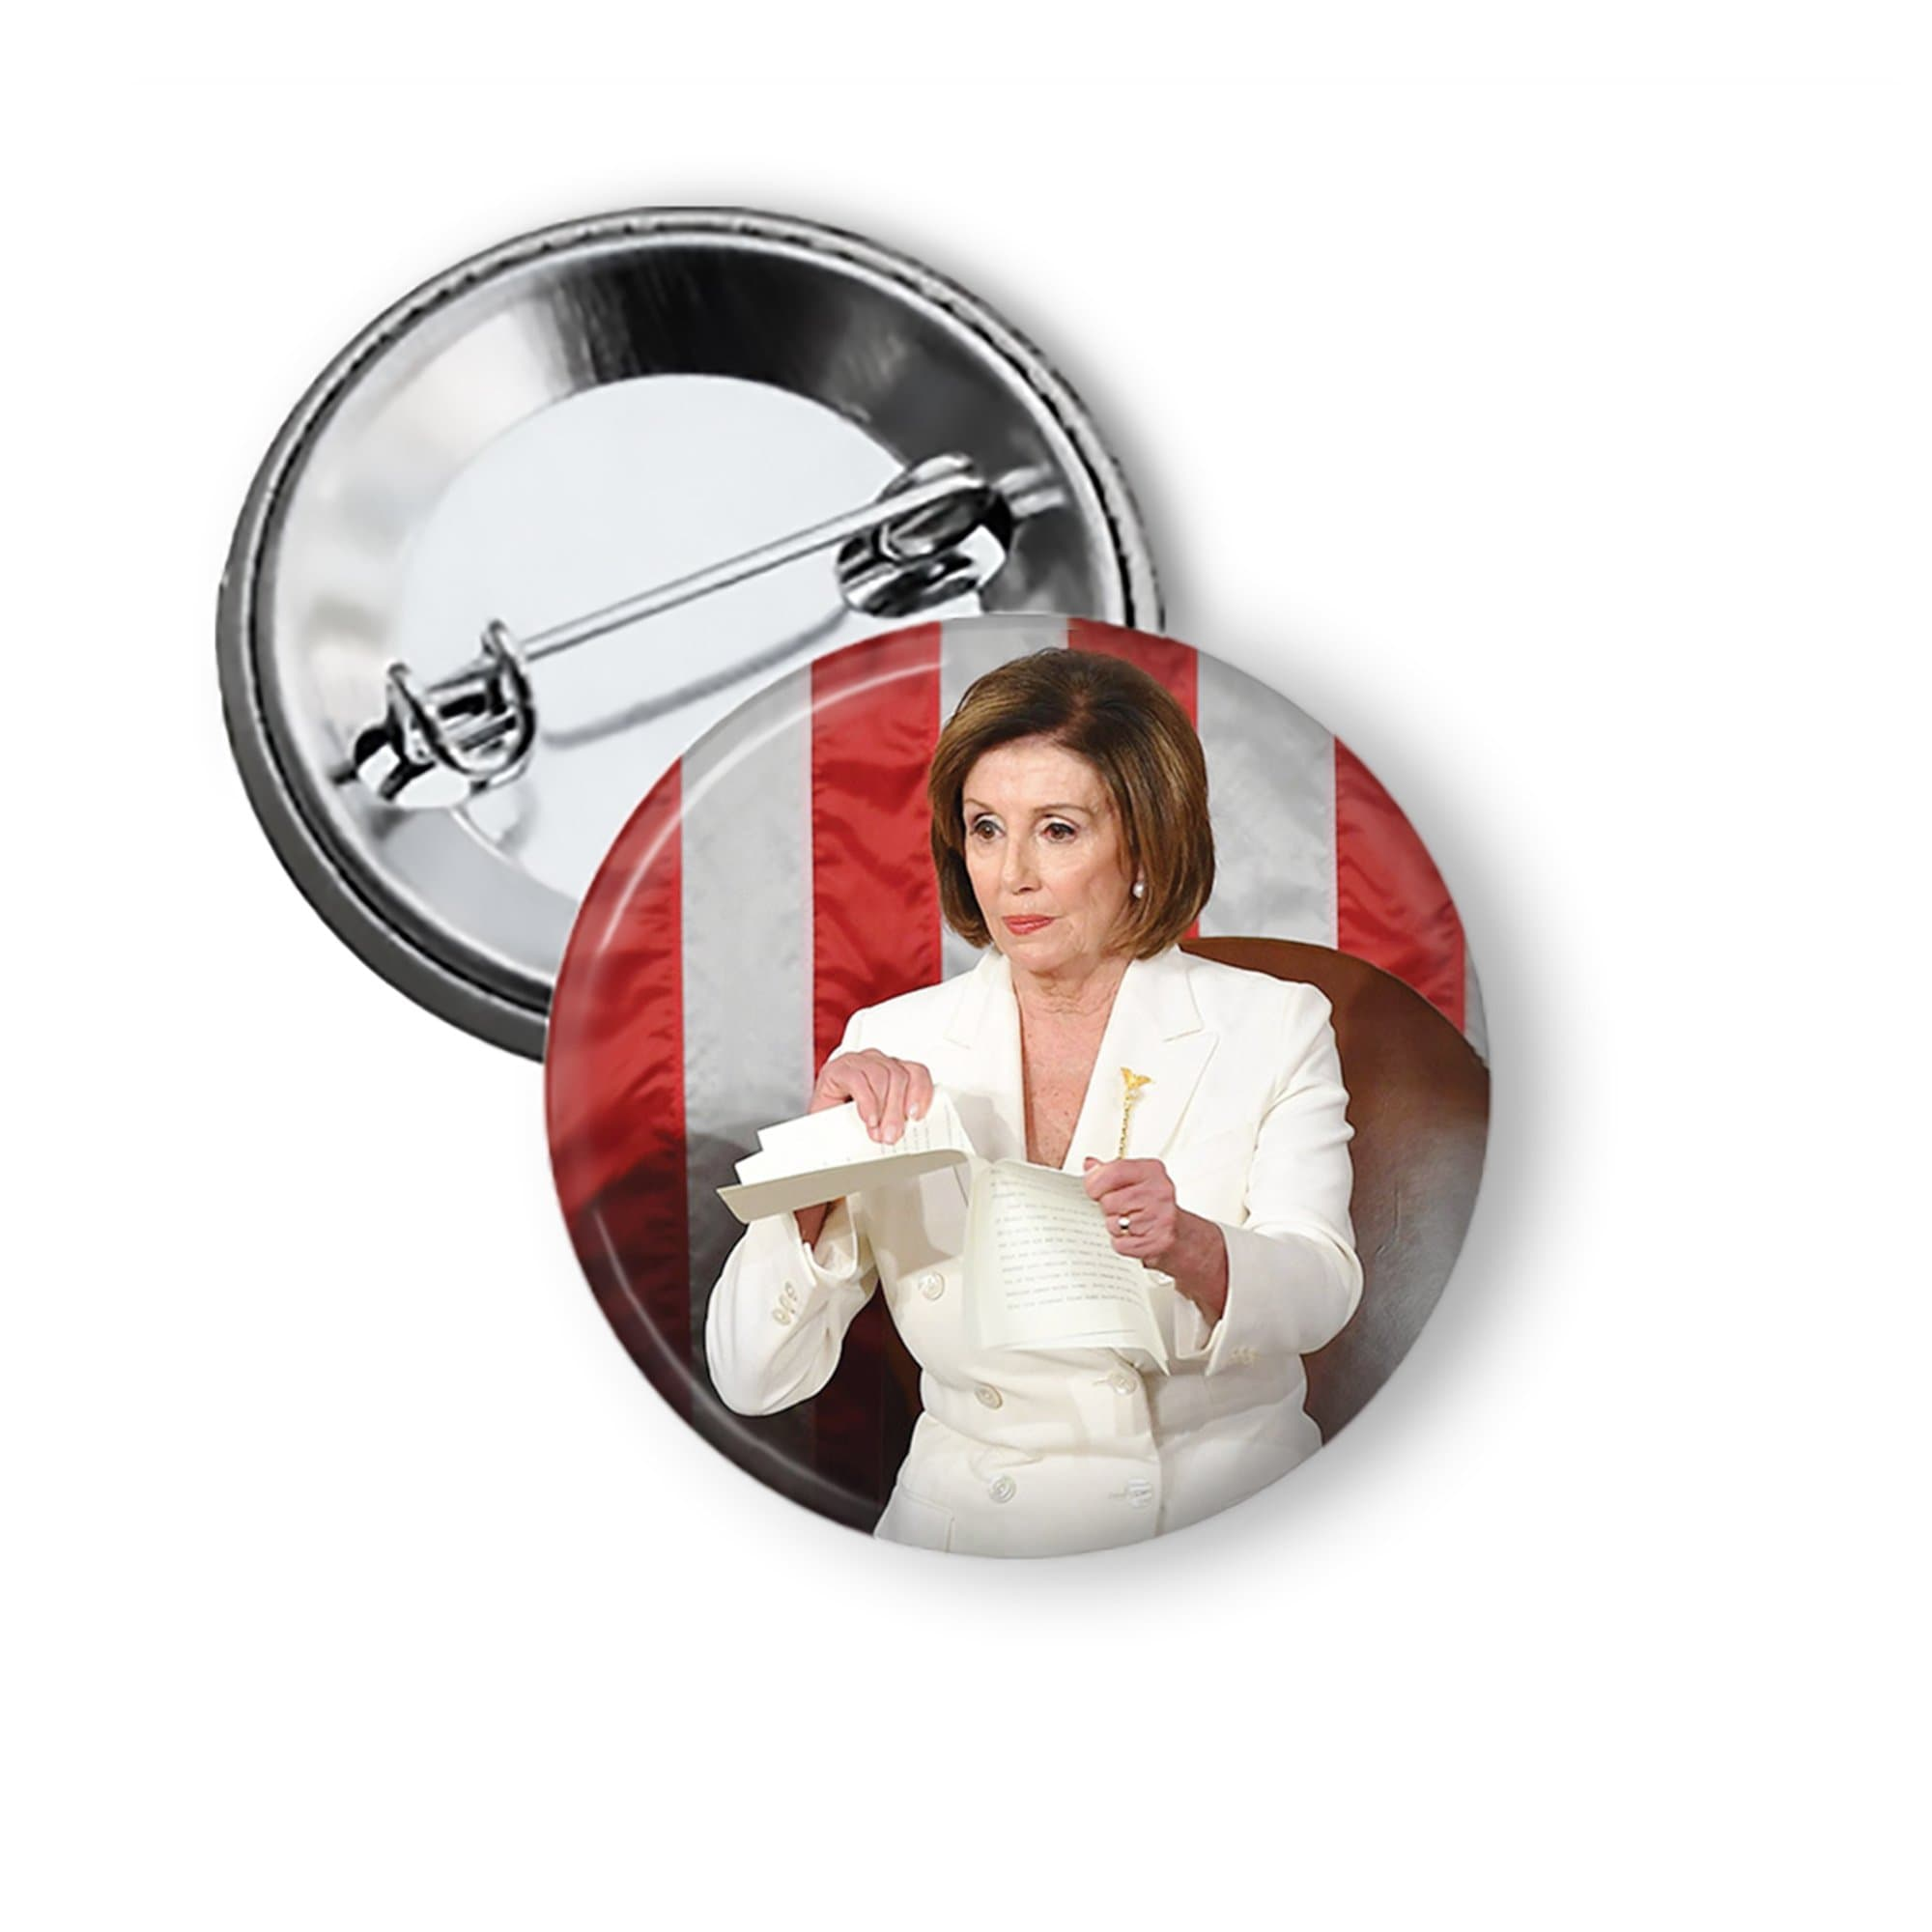 Nancy Pelosi Tearing 2020 State of the Union Pin Pinback Button Pins Buttons For the People